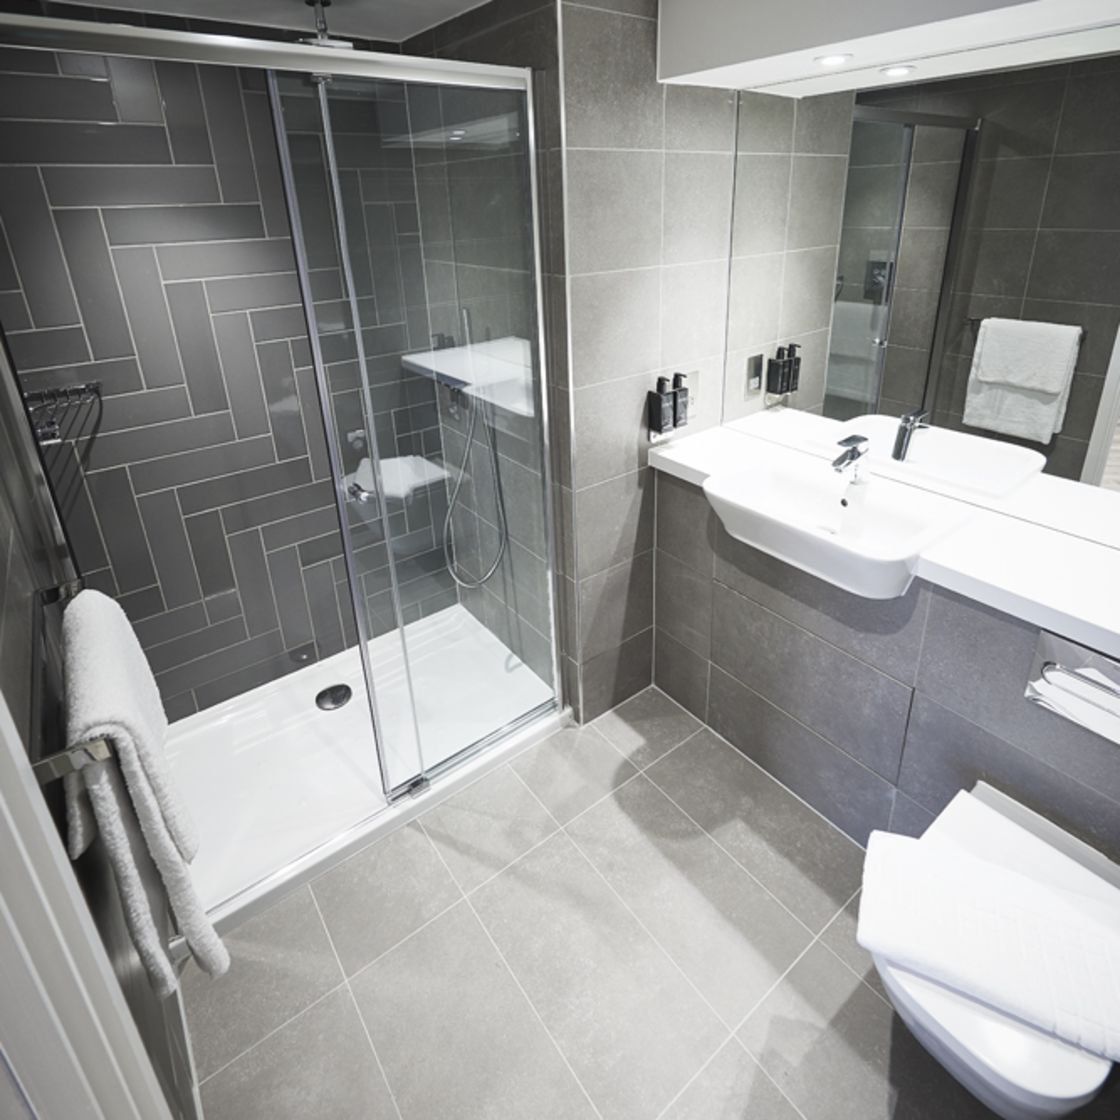 En-suite bathroom with rainfall shower. IconInc @ Roomzzz. Student Apartments in York